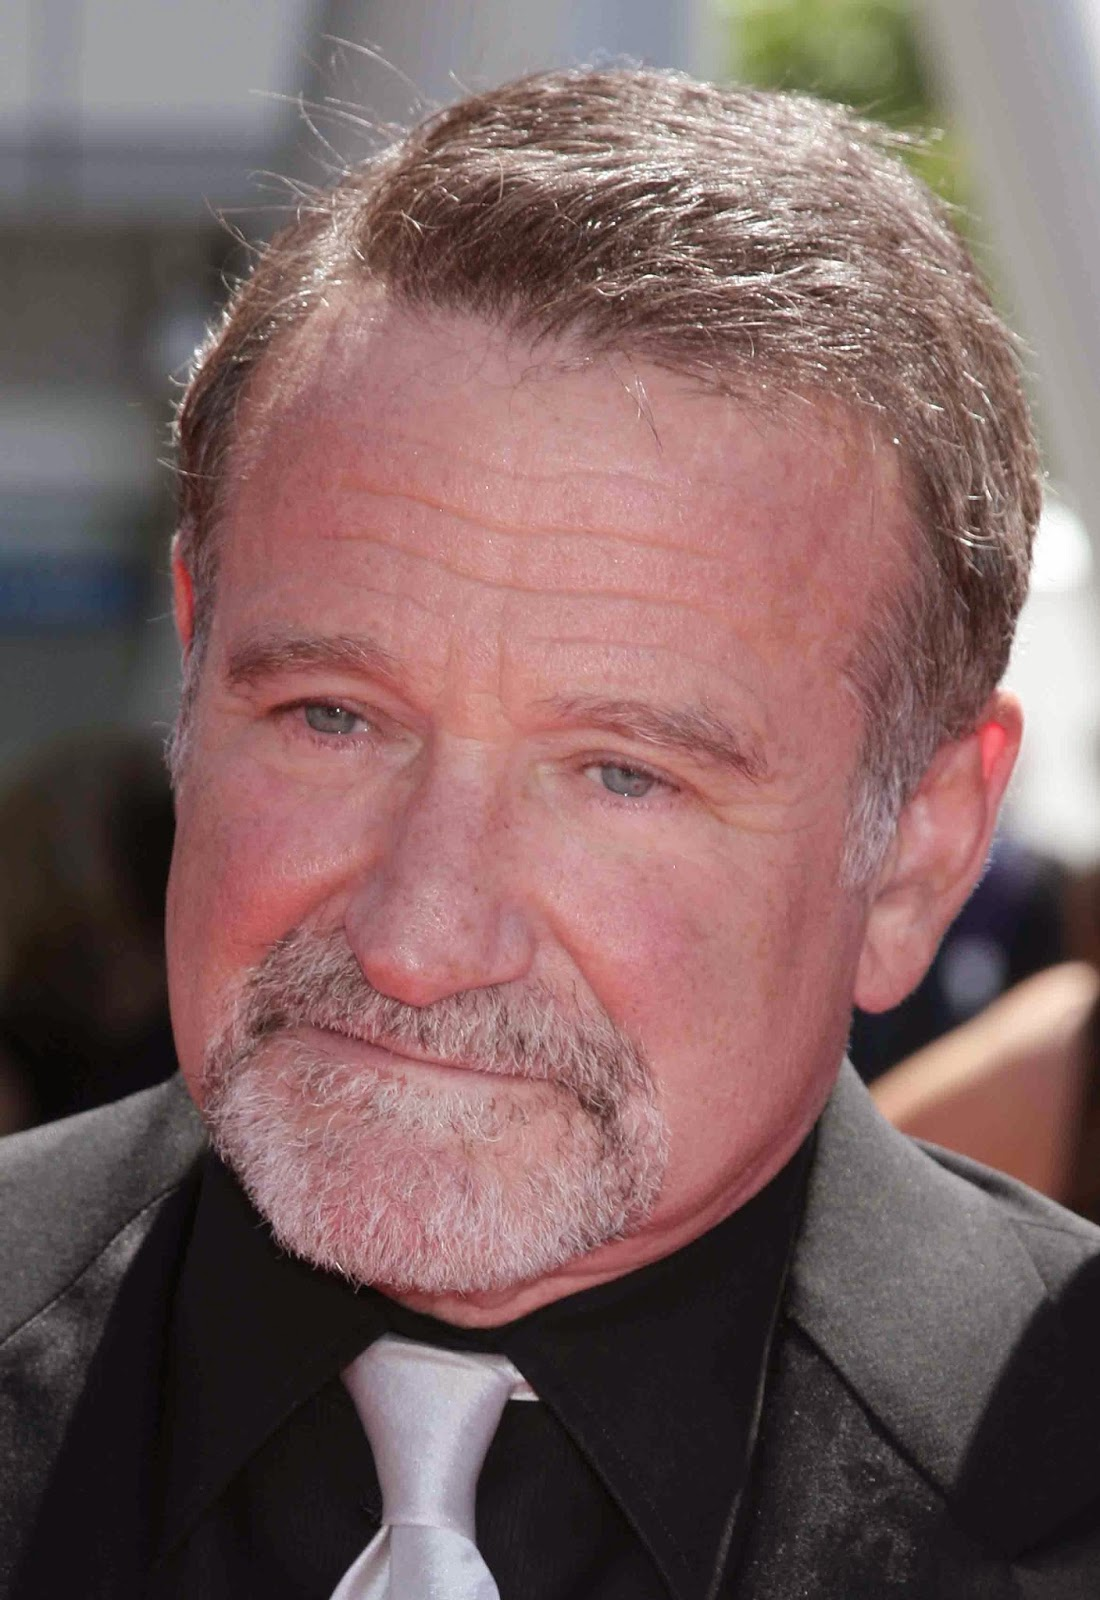 Times Square Gossip: ROBIN WILLIAMS LAST FILM MERRY FRIGGIN CHRISTMAS